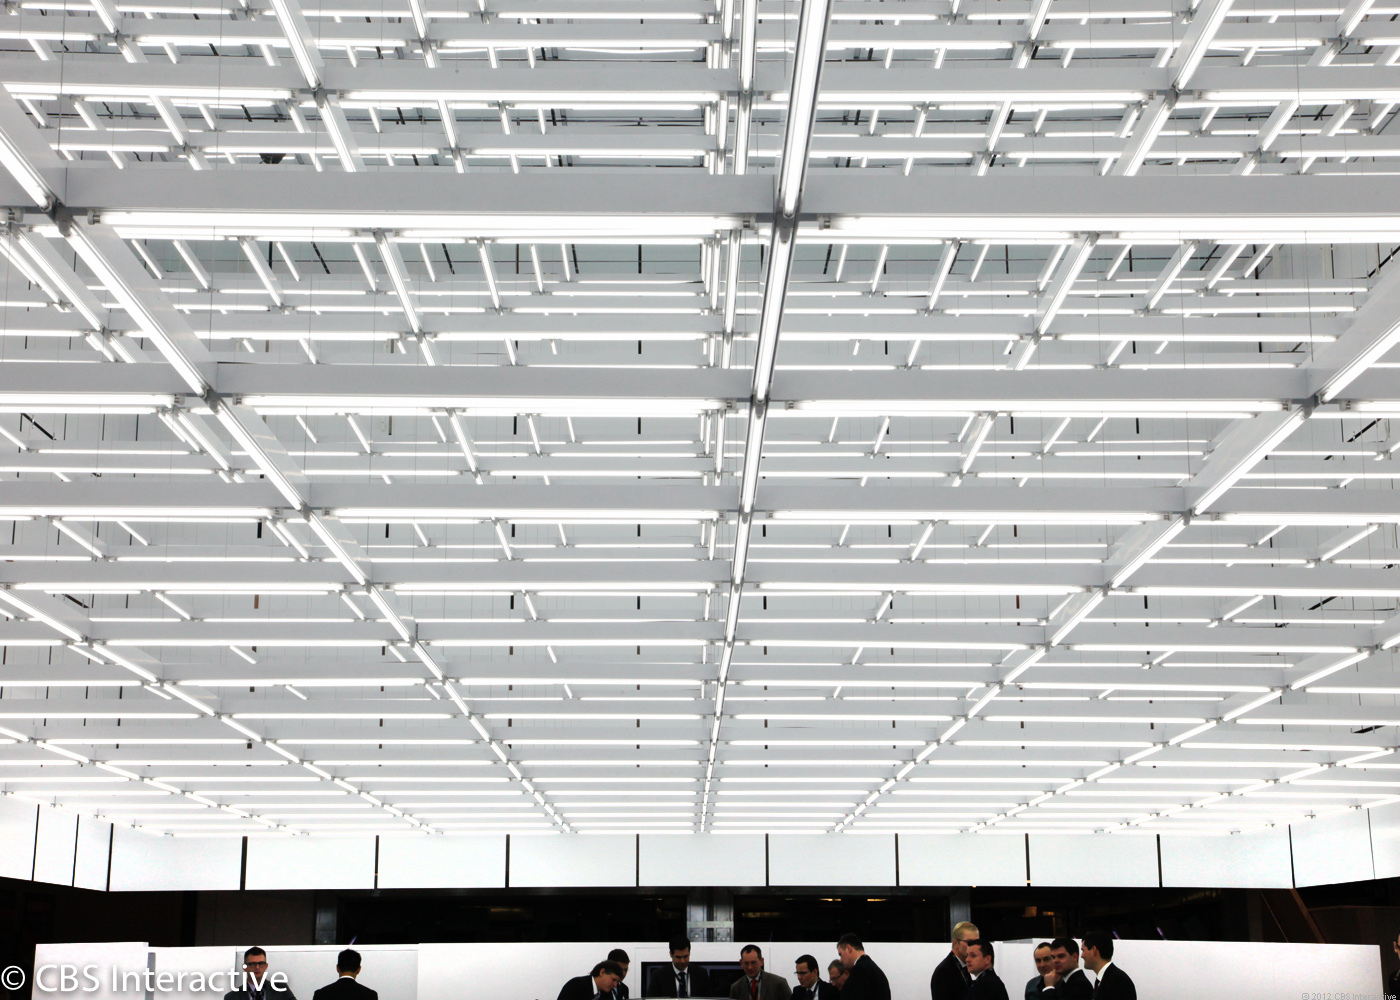 Ceiling of the Las Vegas Convention Center